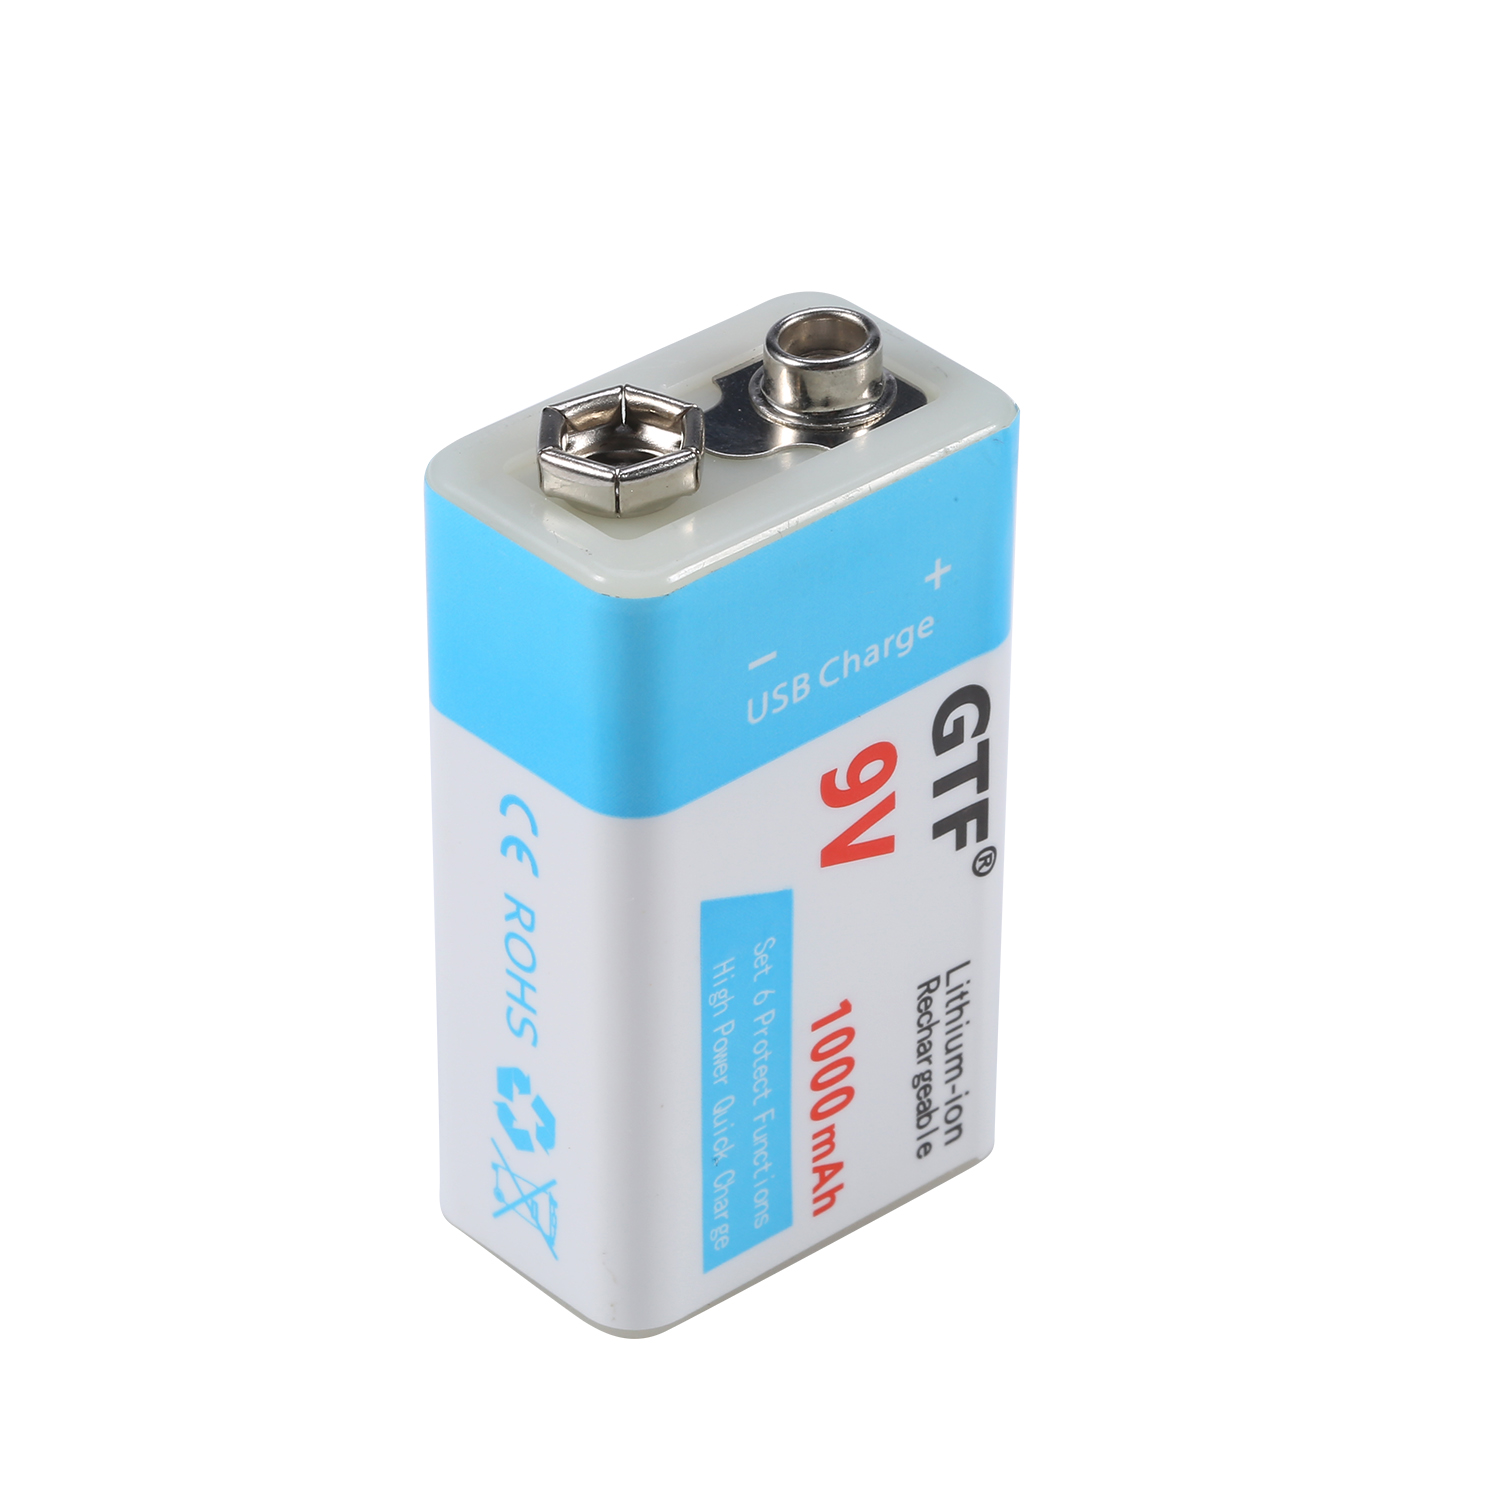 GTF 9V 1000mAh/500mAh USB Battery Li-polymer Rechargeable Battery USB Lithium Battery For Toy Electronic Product Drop Shipping